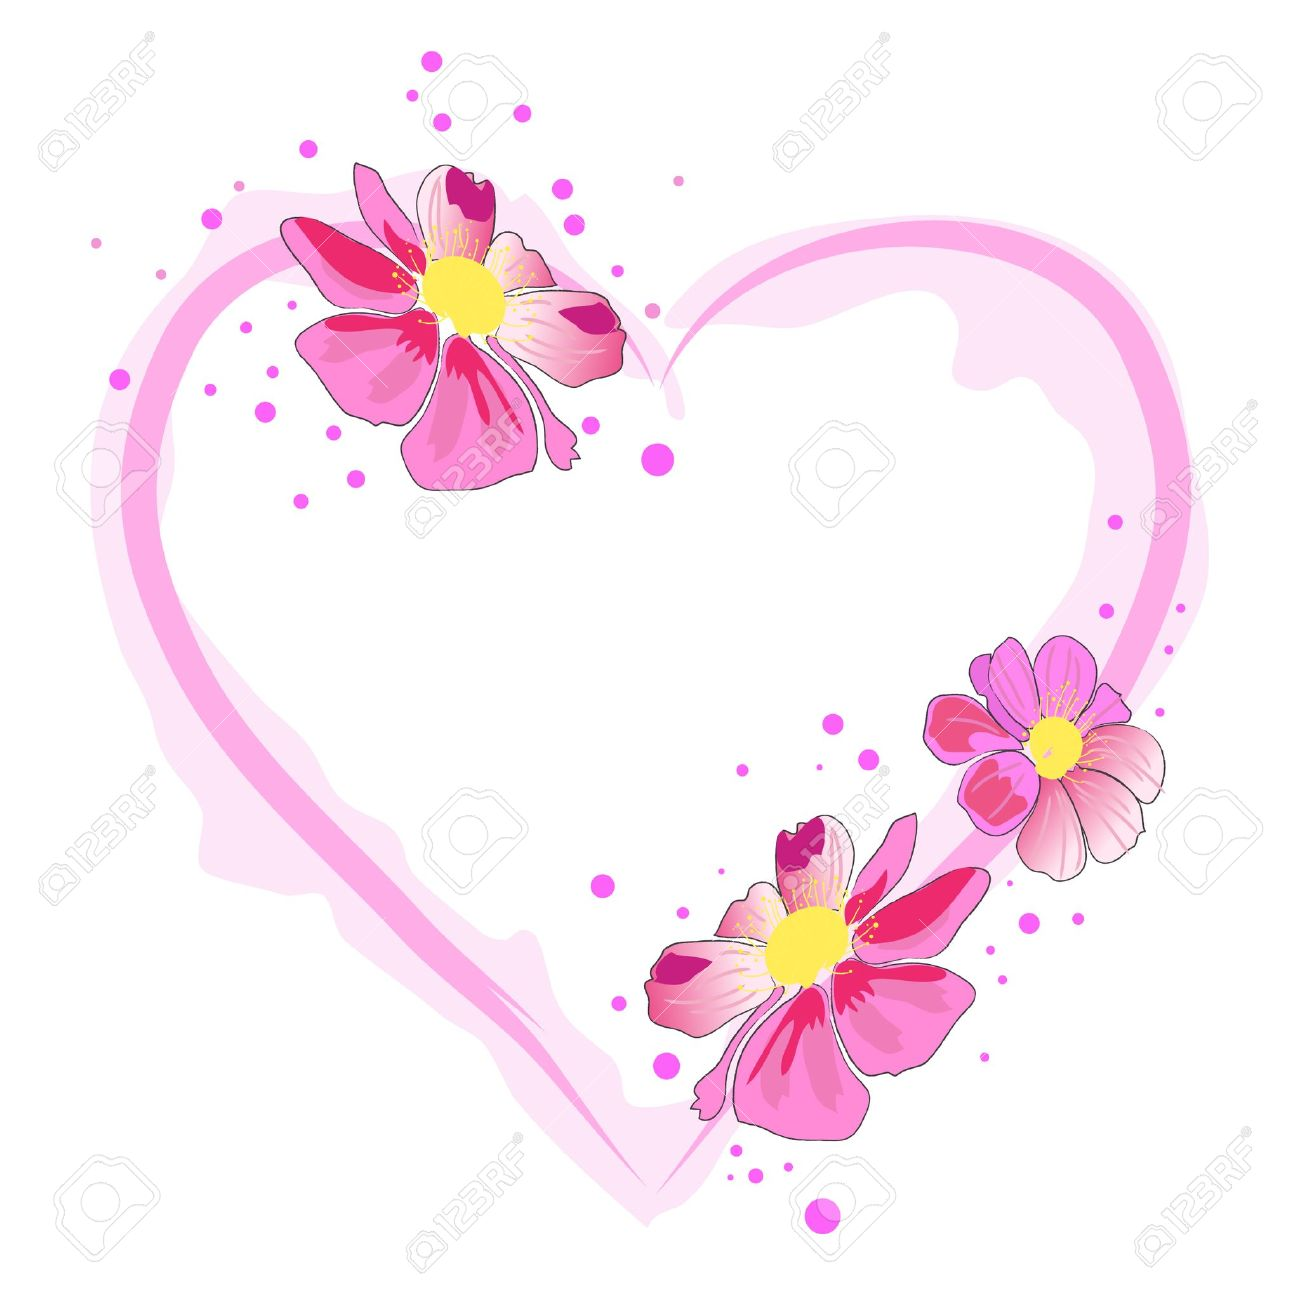 Pink hearts and flowers clipart png Beautiful Heart And Pink Watercolor Blossom Flower Royalty Free ... png